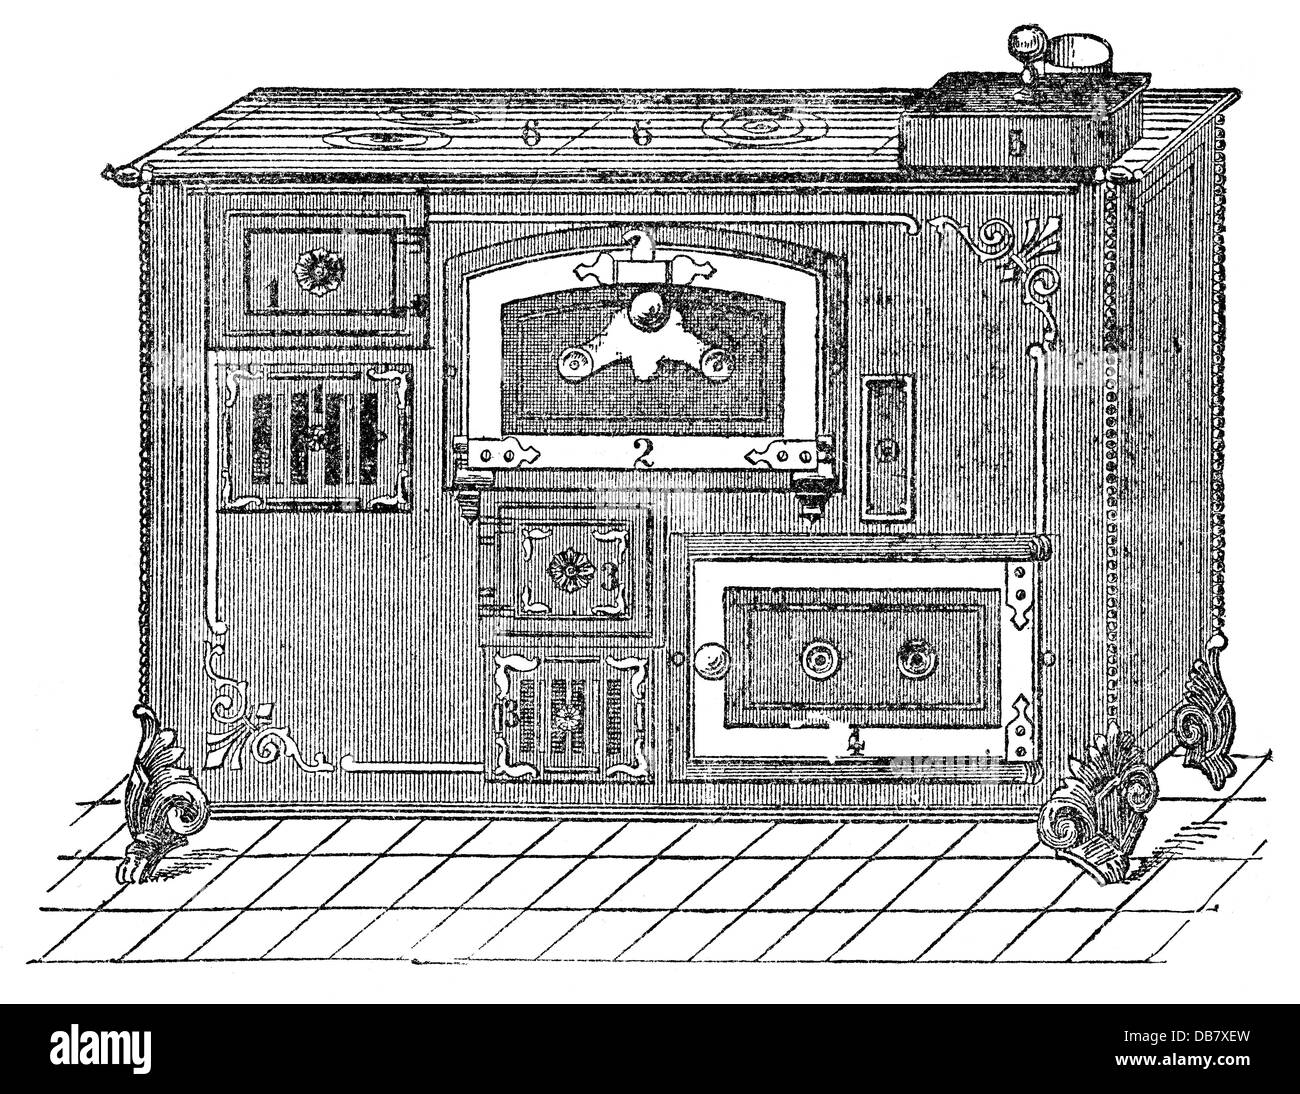 oven wood engraving stockfotos oven wood engraving. Black Bedroom Furniture Sets. Home Design Ideas